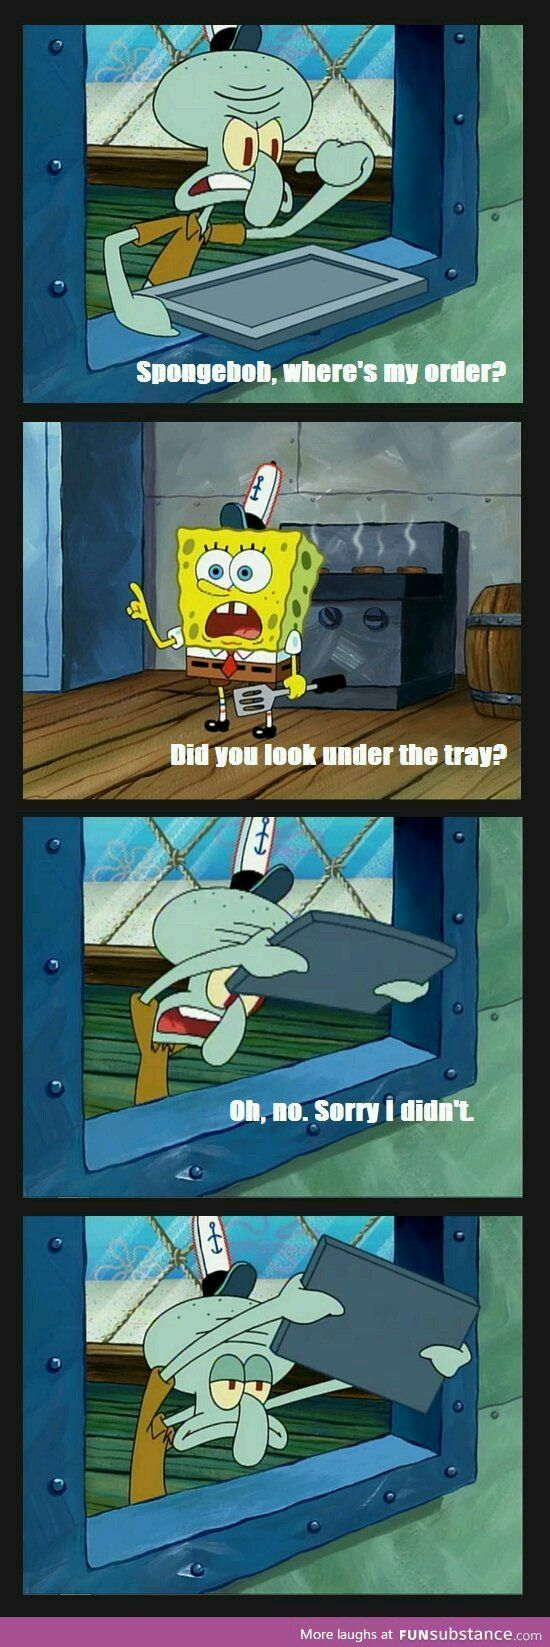 another spongebob picture, which is also funny. I've seen this episode probably too many times, it's funny because spongebob is so dumb and squidward hates him